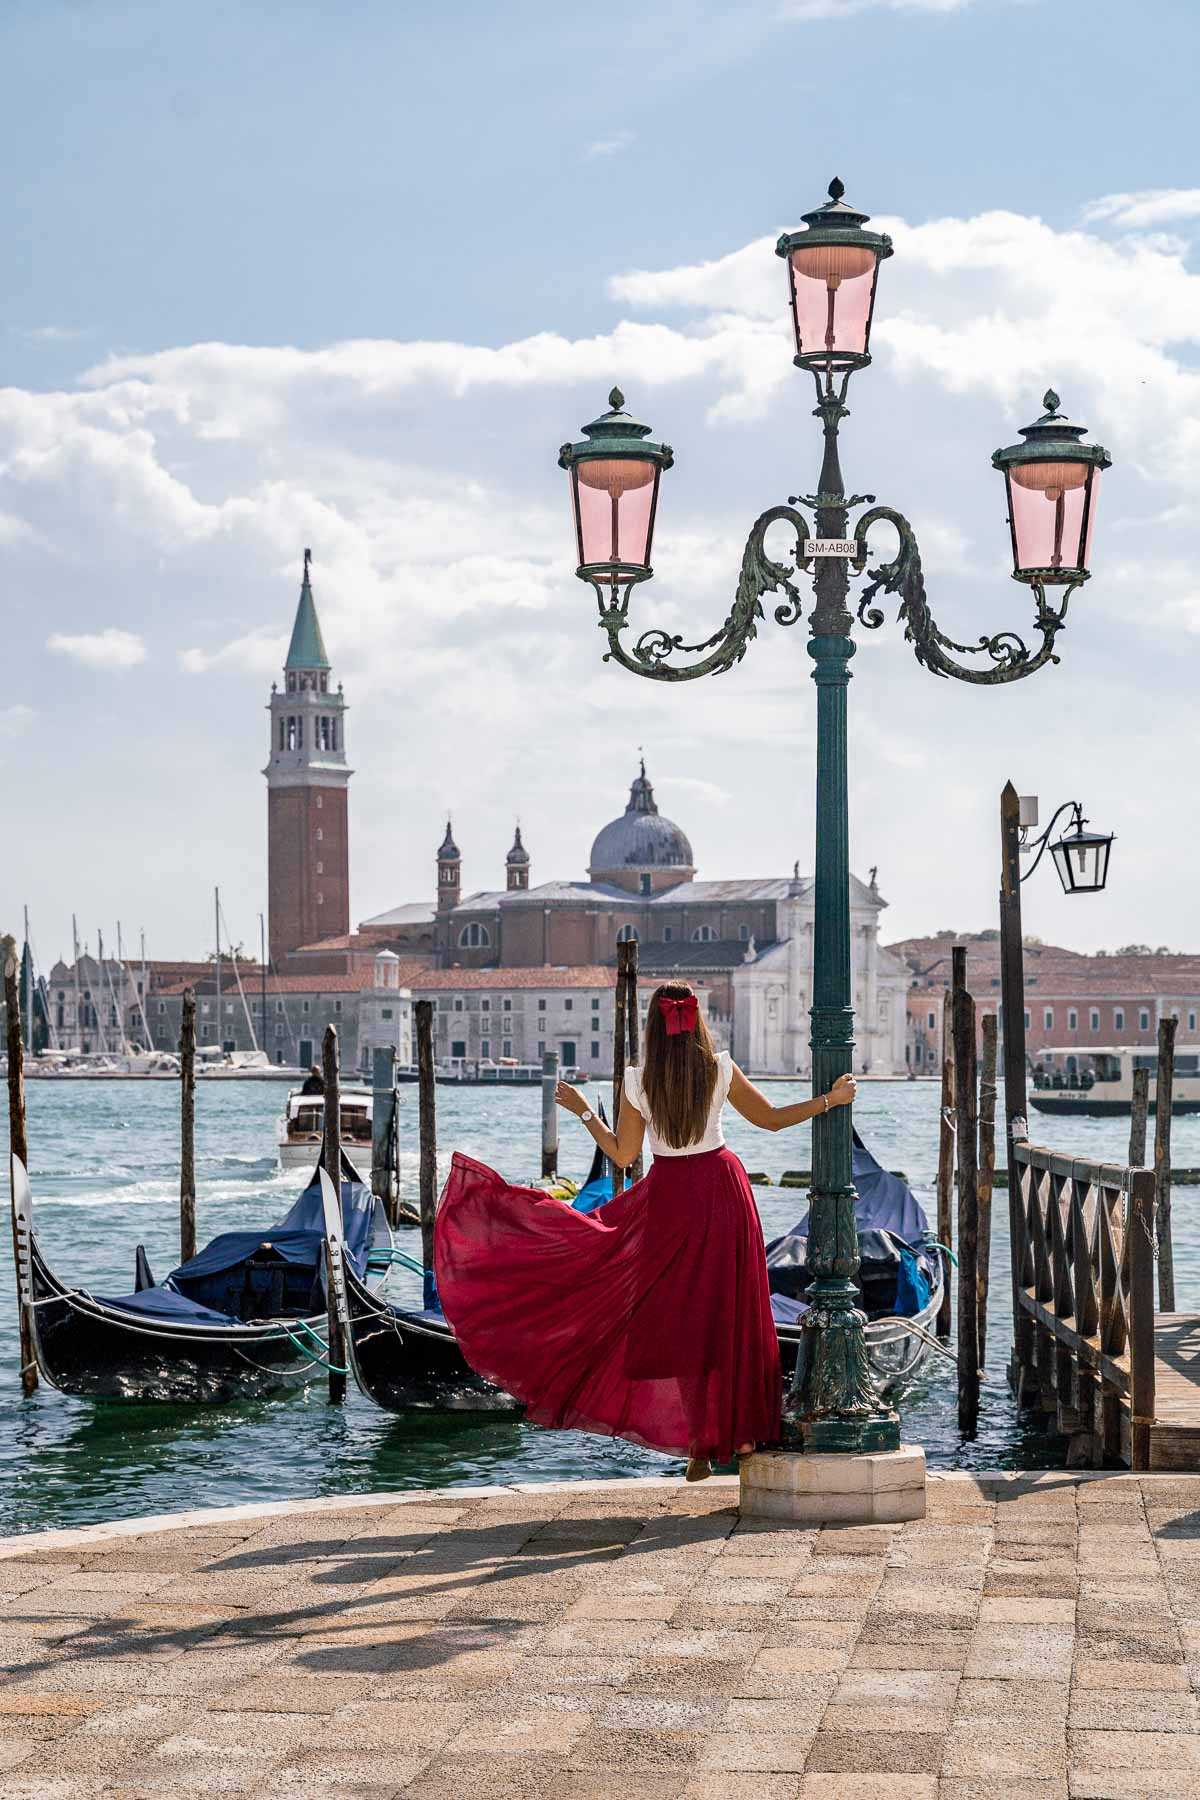 Girl in a red dress standing in front of the Gondolas at St. Mark's Square in Venice, Italy